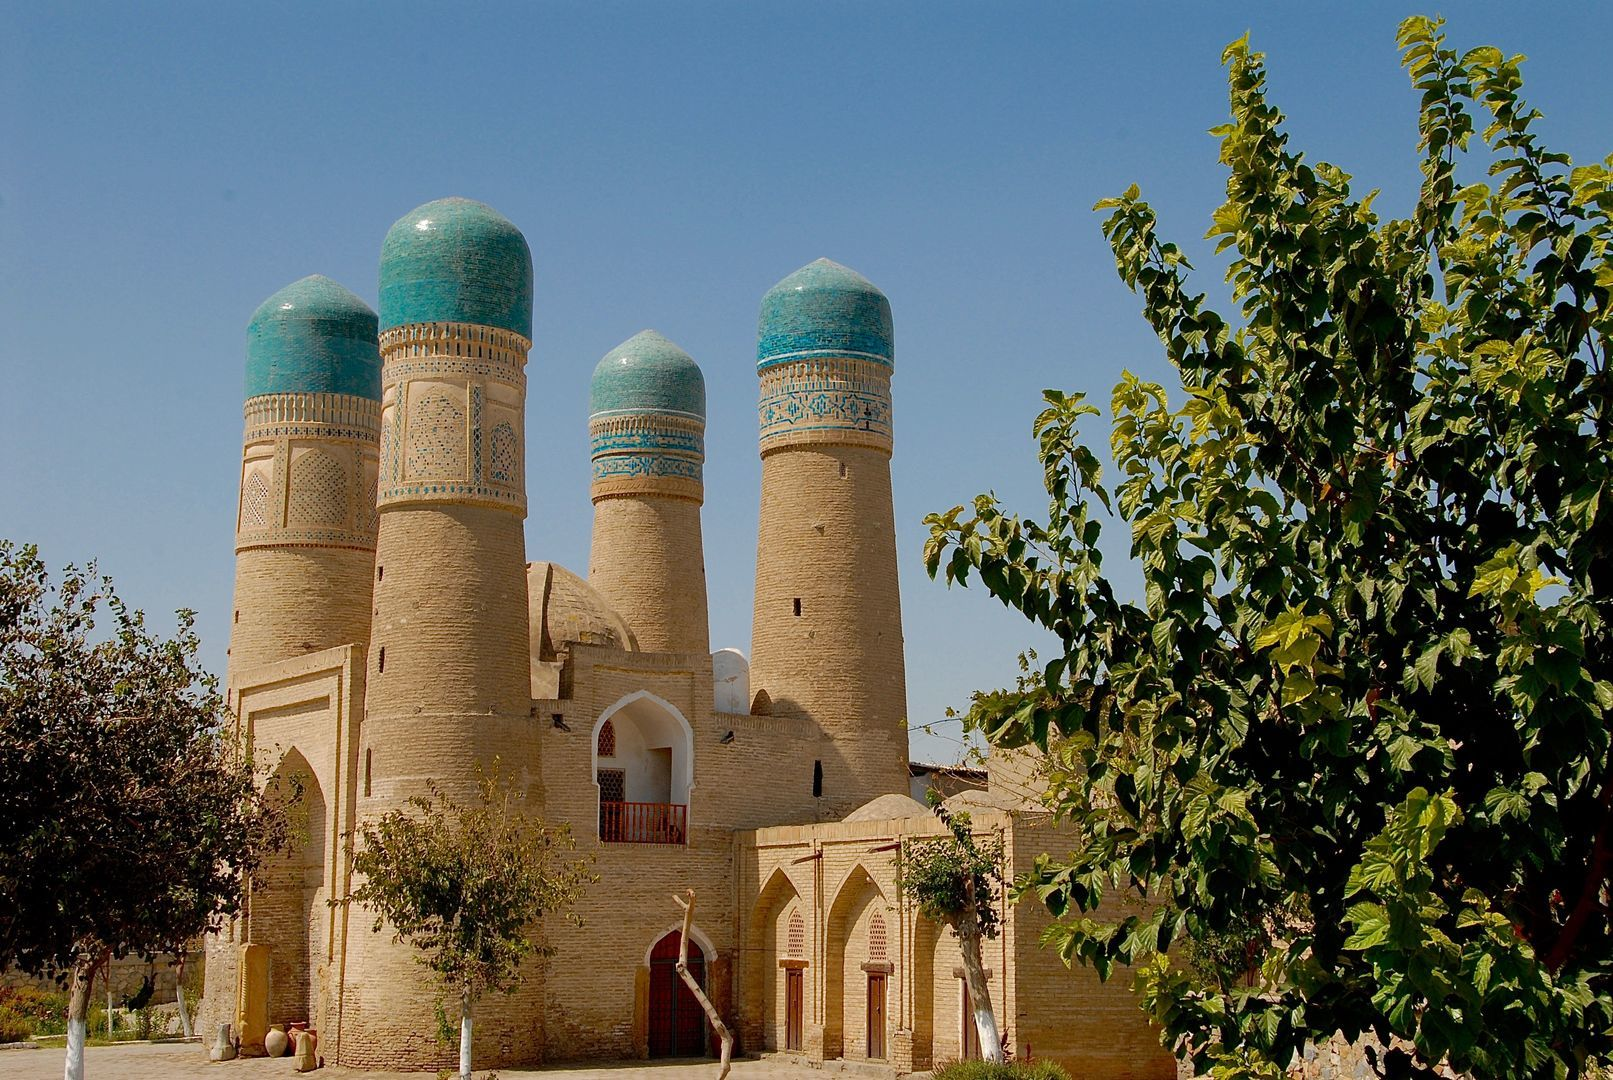 Bukhara Travel guide with chor minor in Uzbekistan, Central Asia